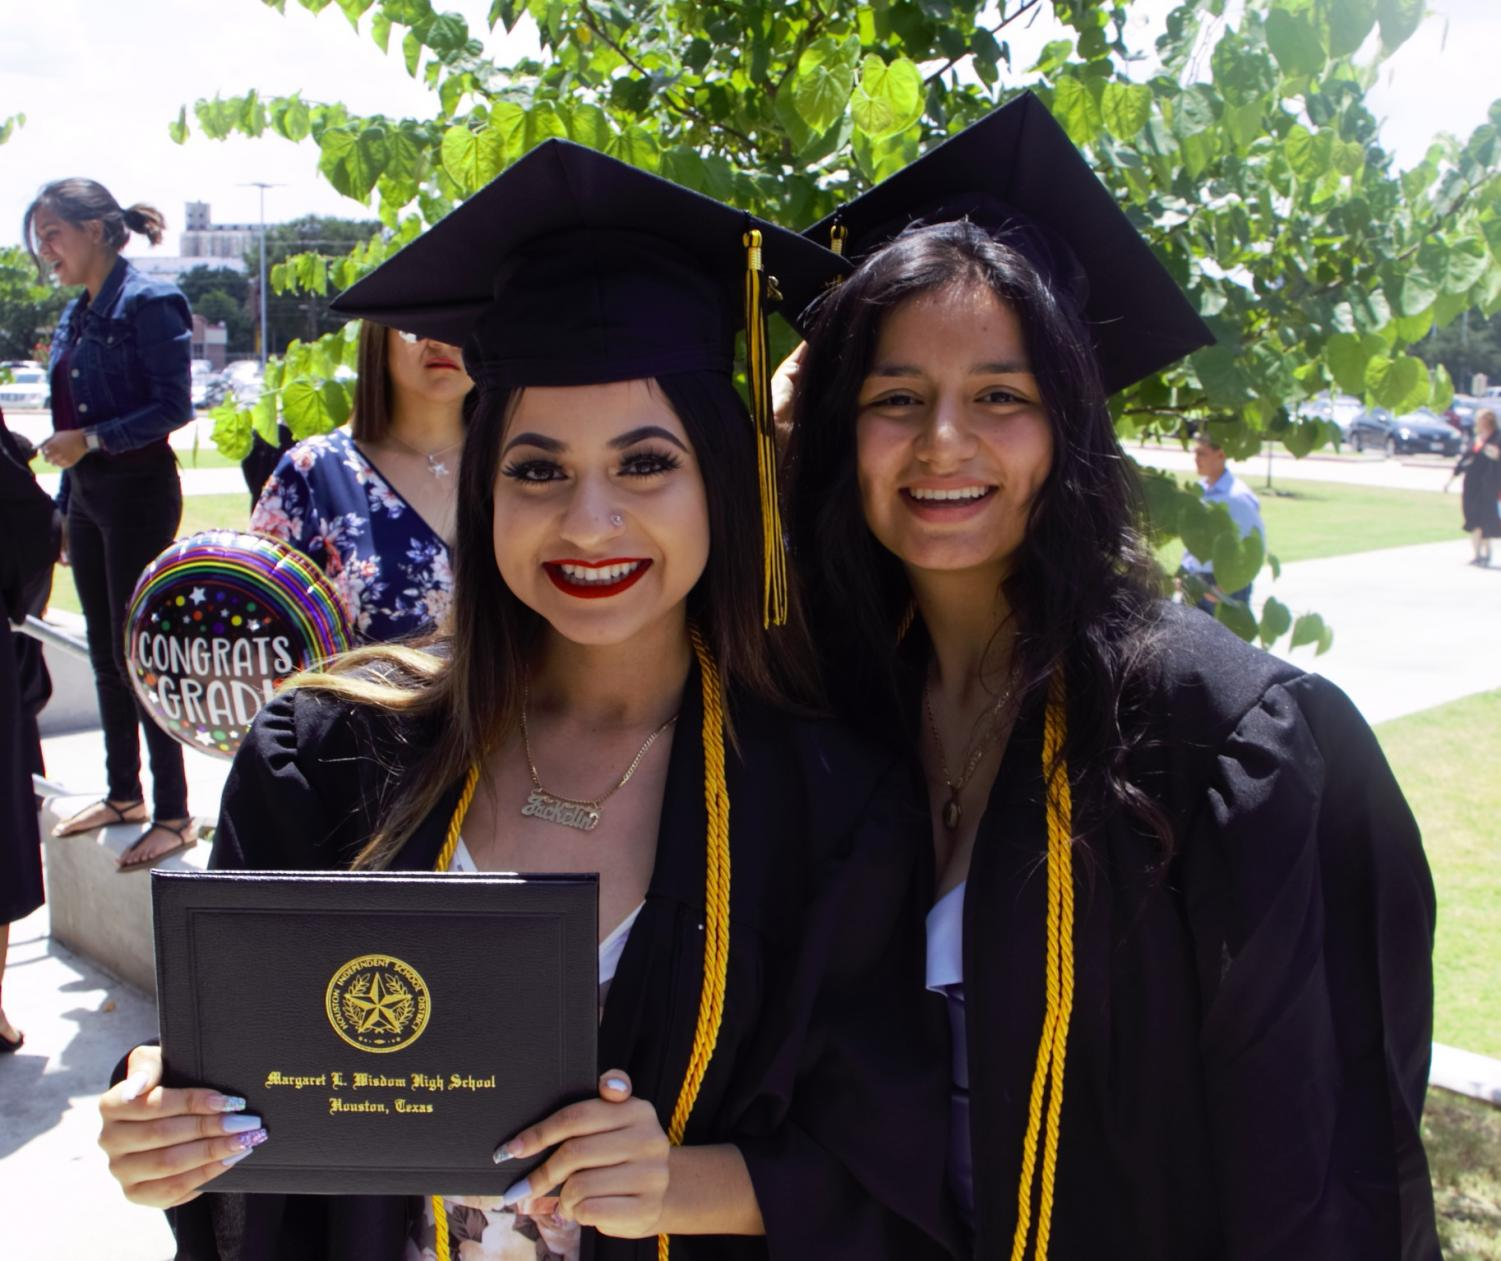 Jackeline Garcia & Cristina Garcia Alvarez are all smiles after receiving their diplomas at the Wisdom HS Class of 2019 Graduation Ceremony